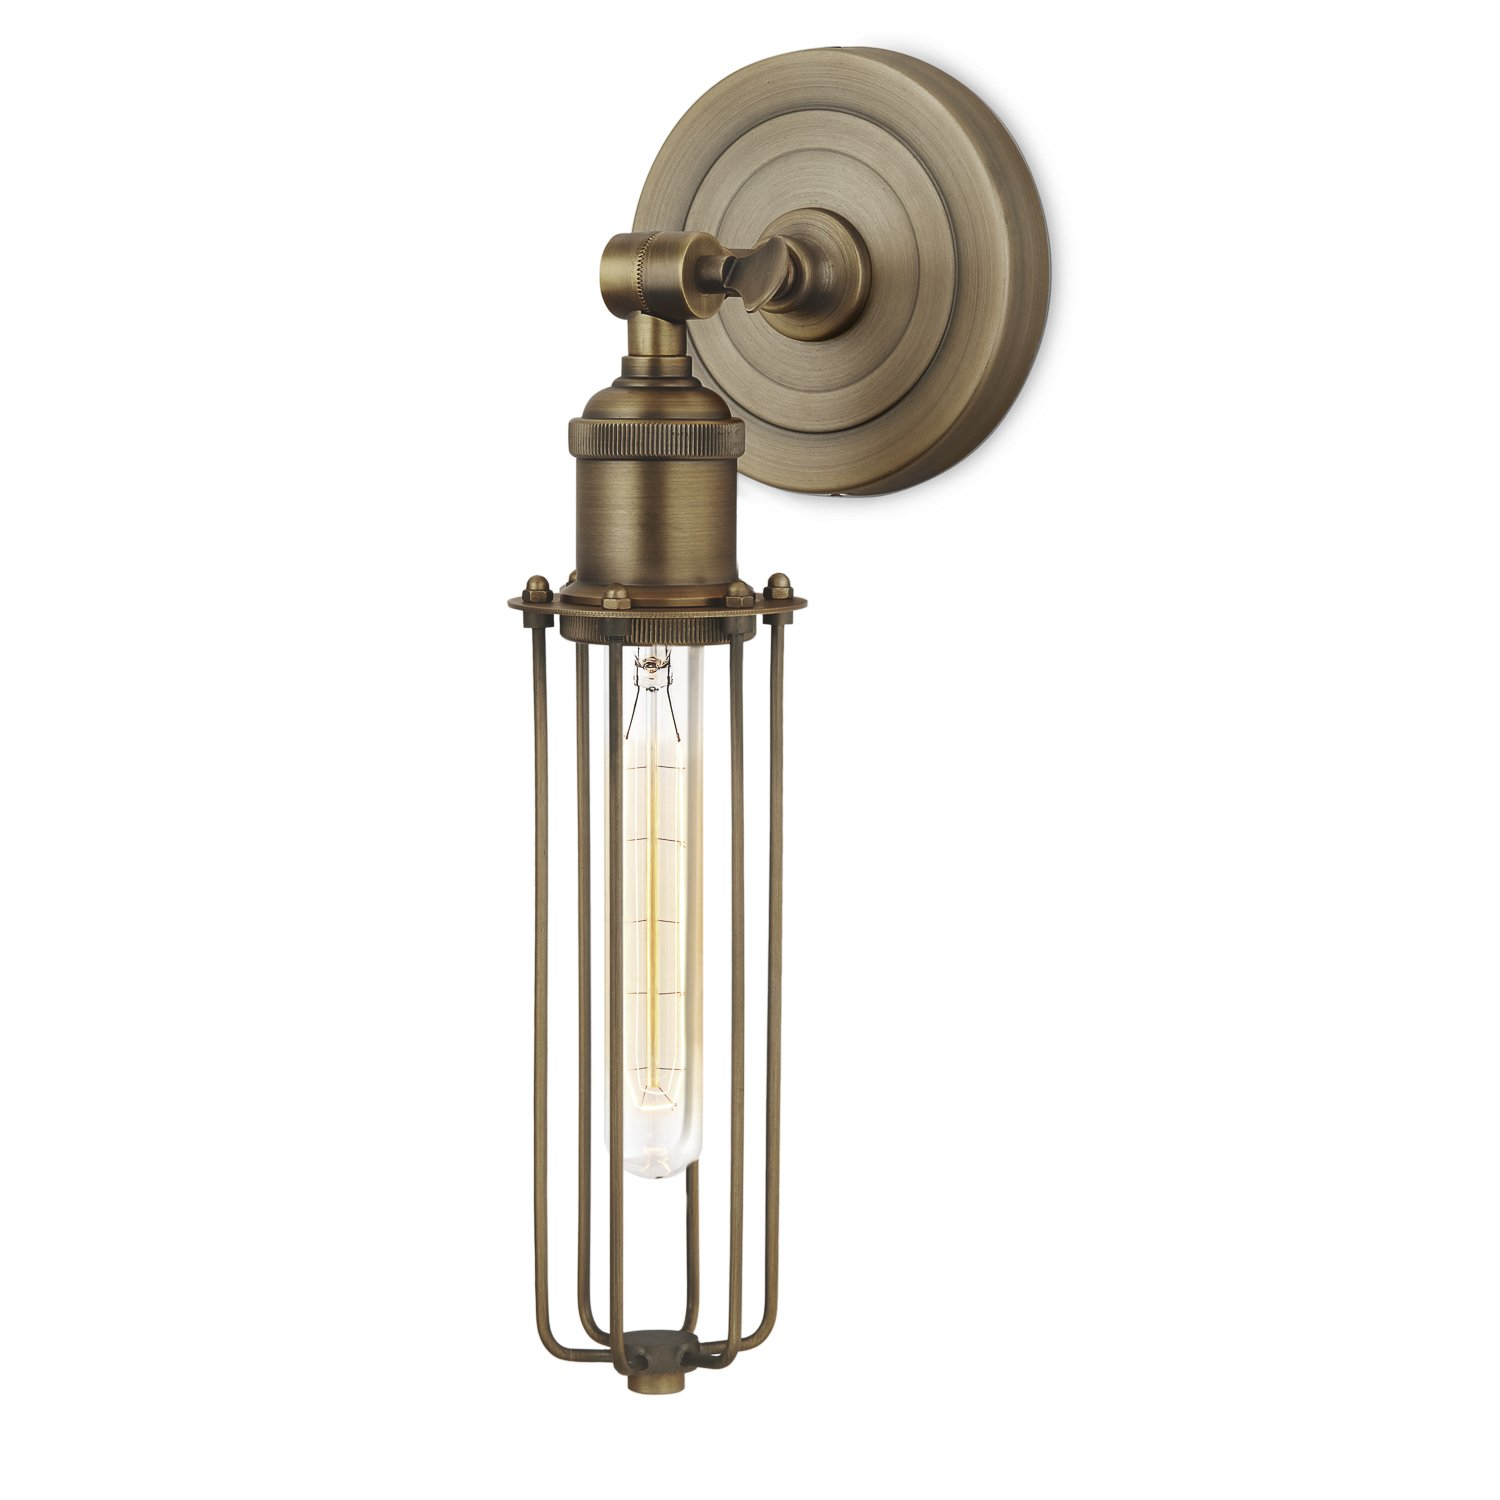 Bronze Wall Sconce Light Fixture - Cage Lamp with Edison Style Vintage Bulb, Dimmable, Brooklyn Bulb Co. Clifton Design, ETL Listed